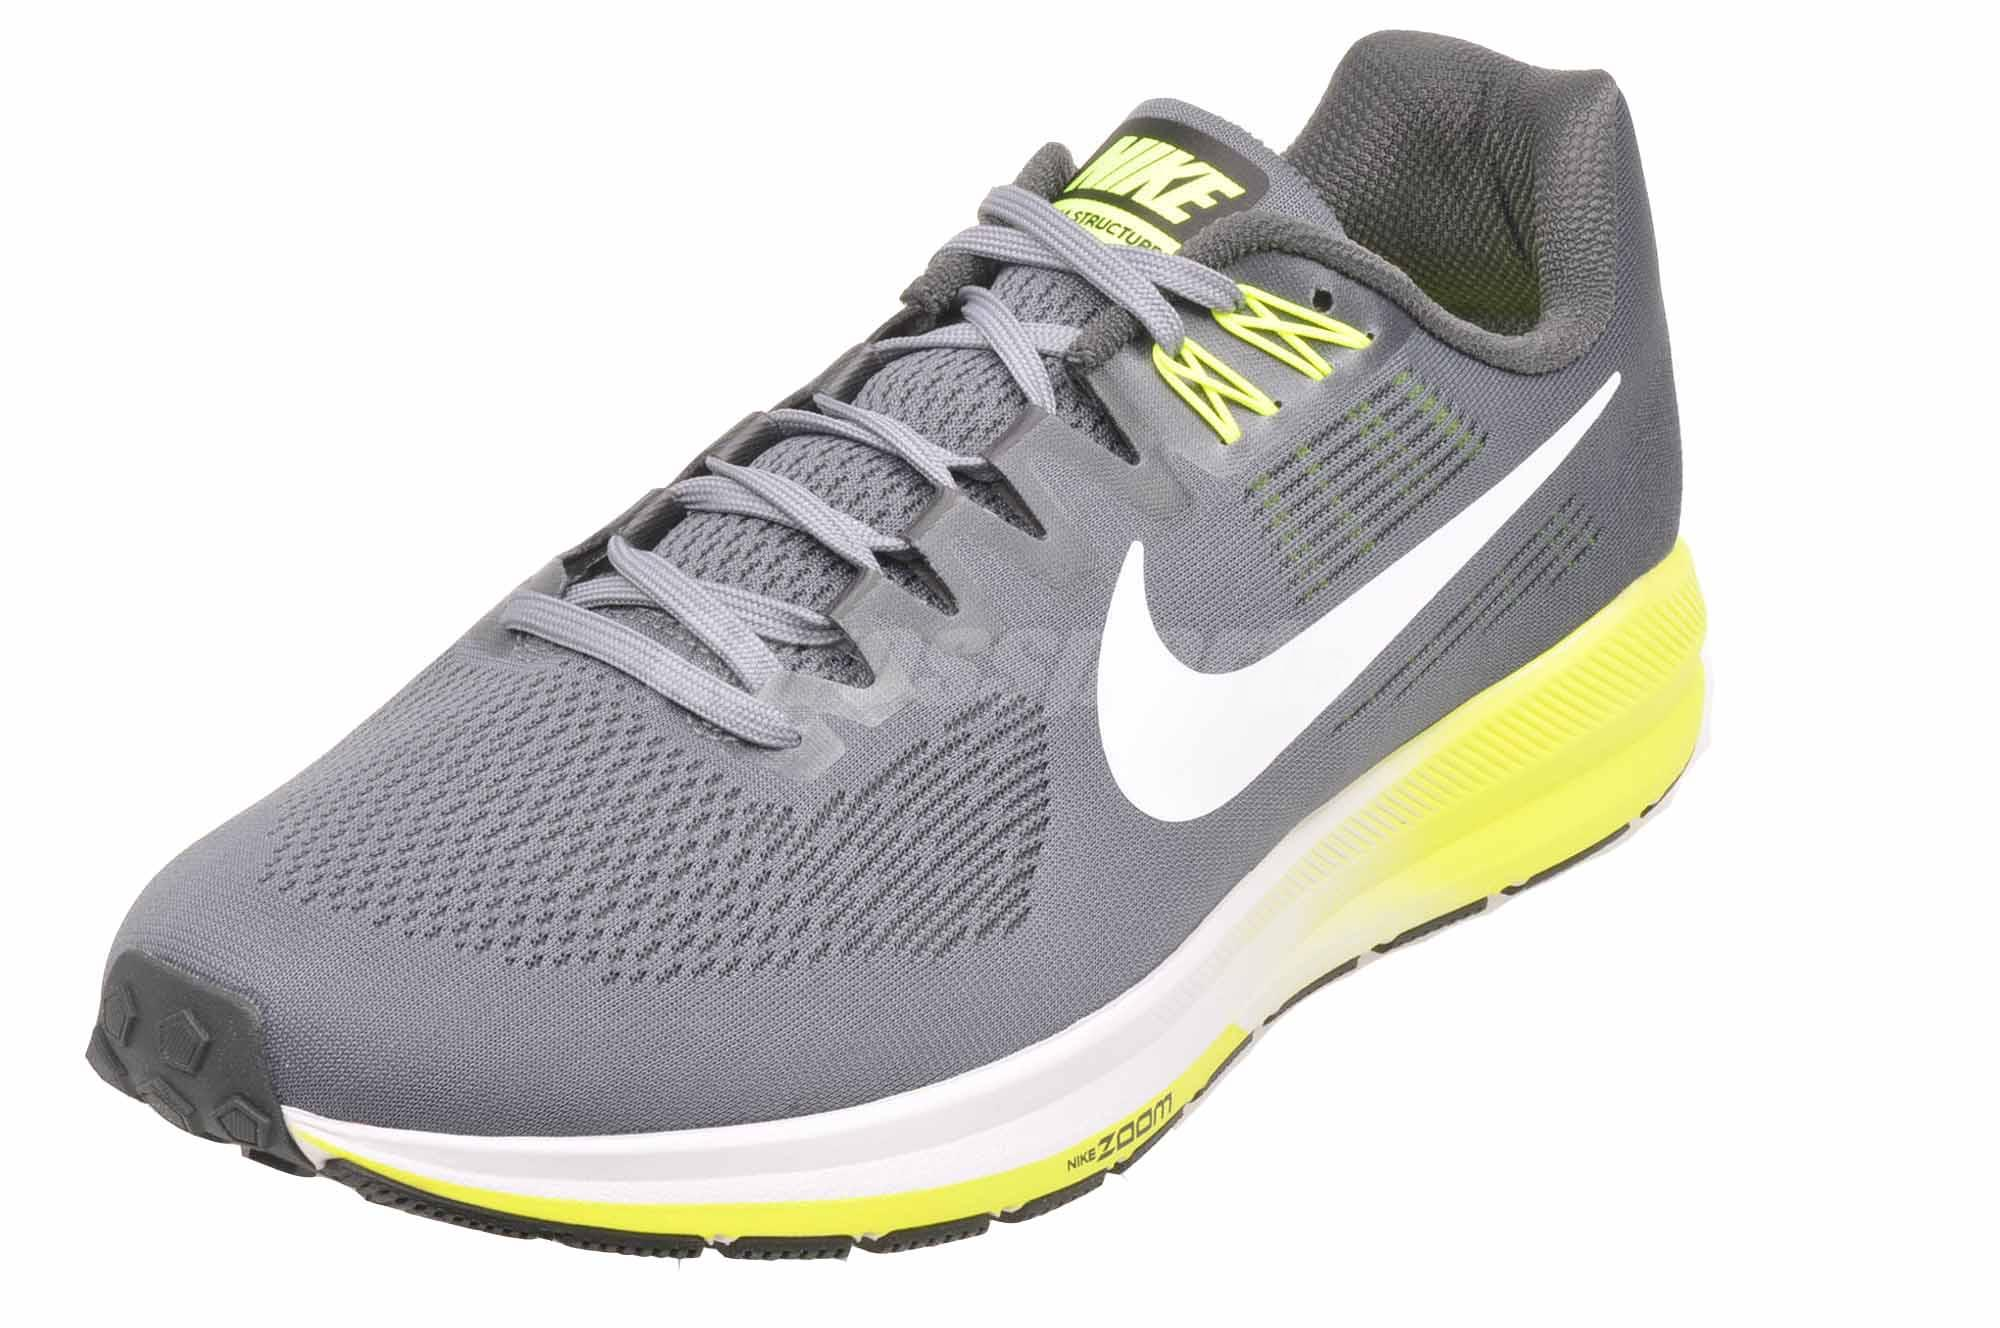 93318960196d3 Nike Air Zoom Structure 21 4E Wide Running Mens Running Shoes Grey ...